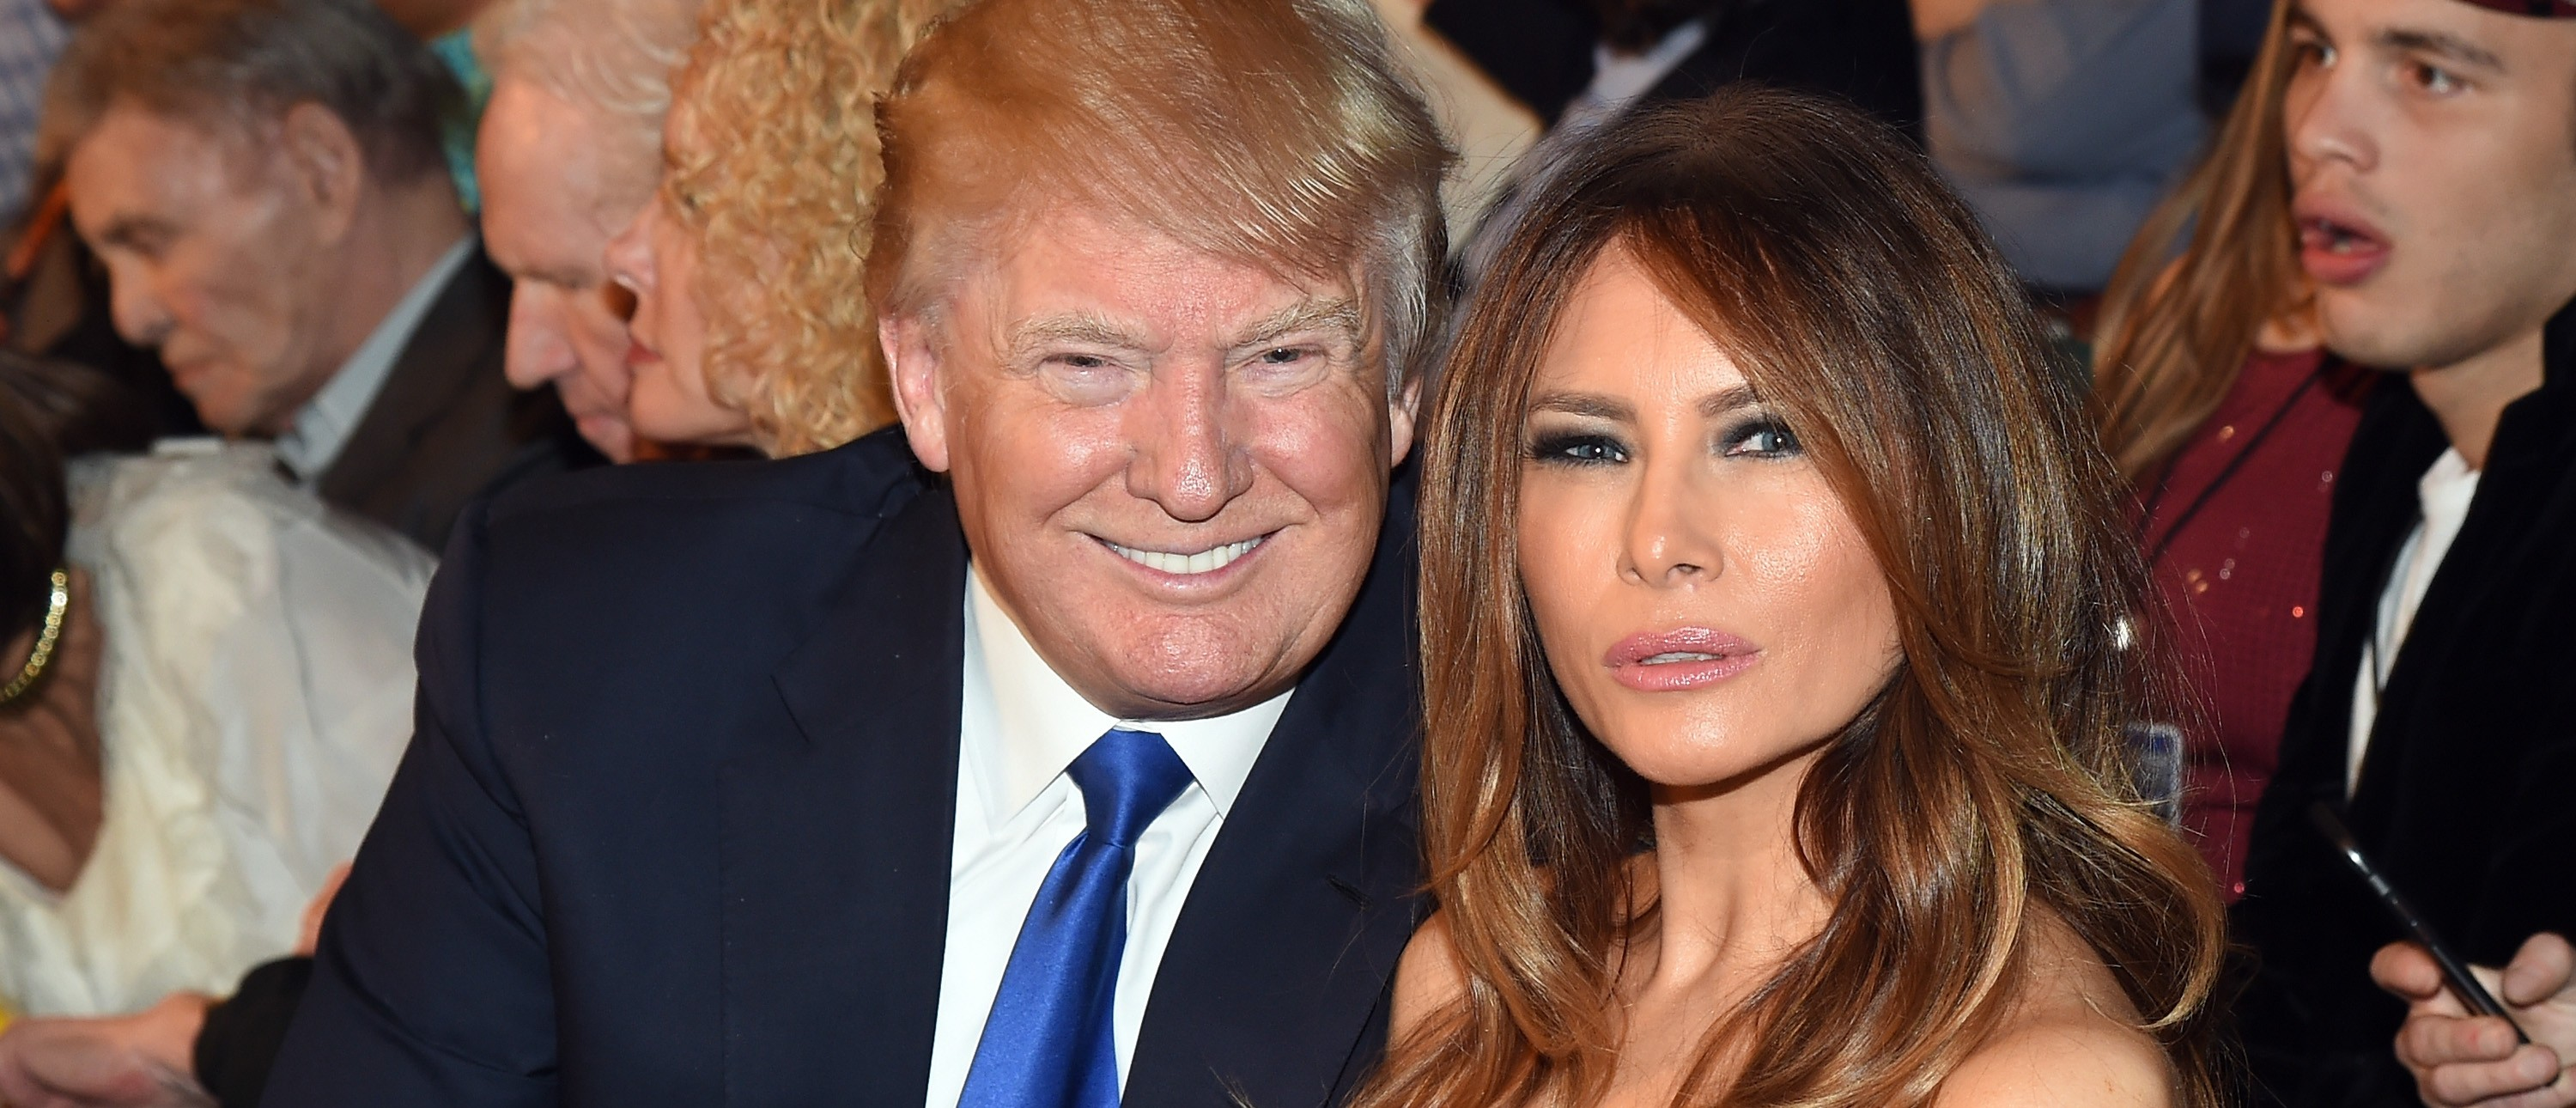 Melania Trump doesn't appear with Donald in public that much. (Photo: Getty Images)